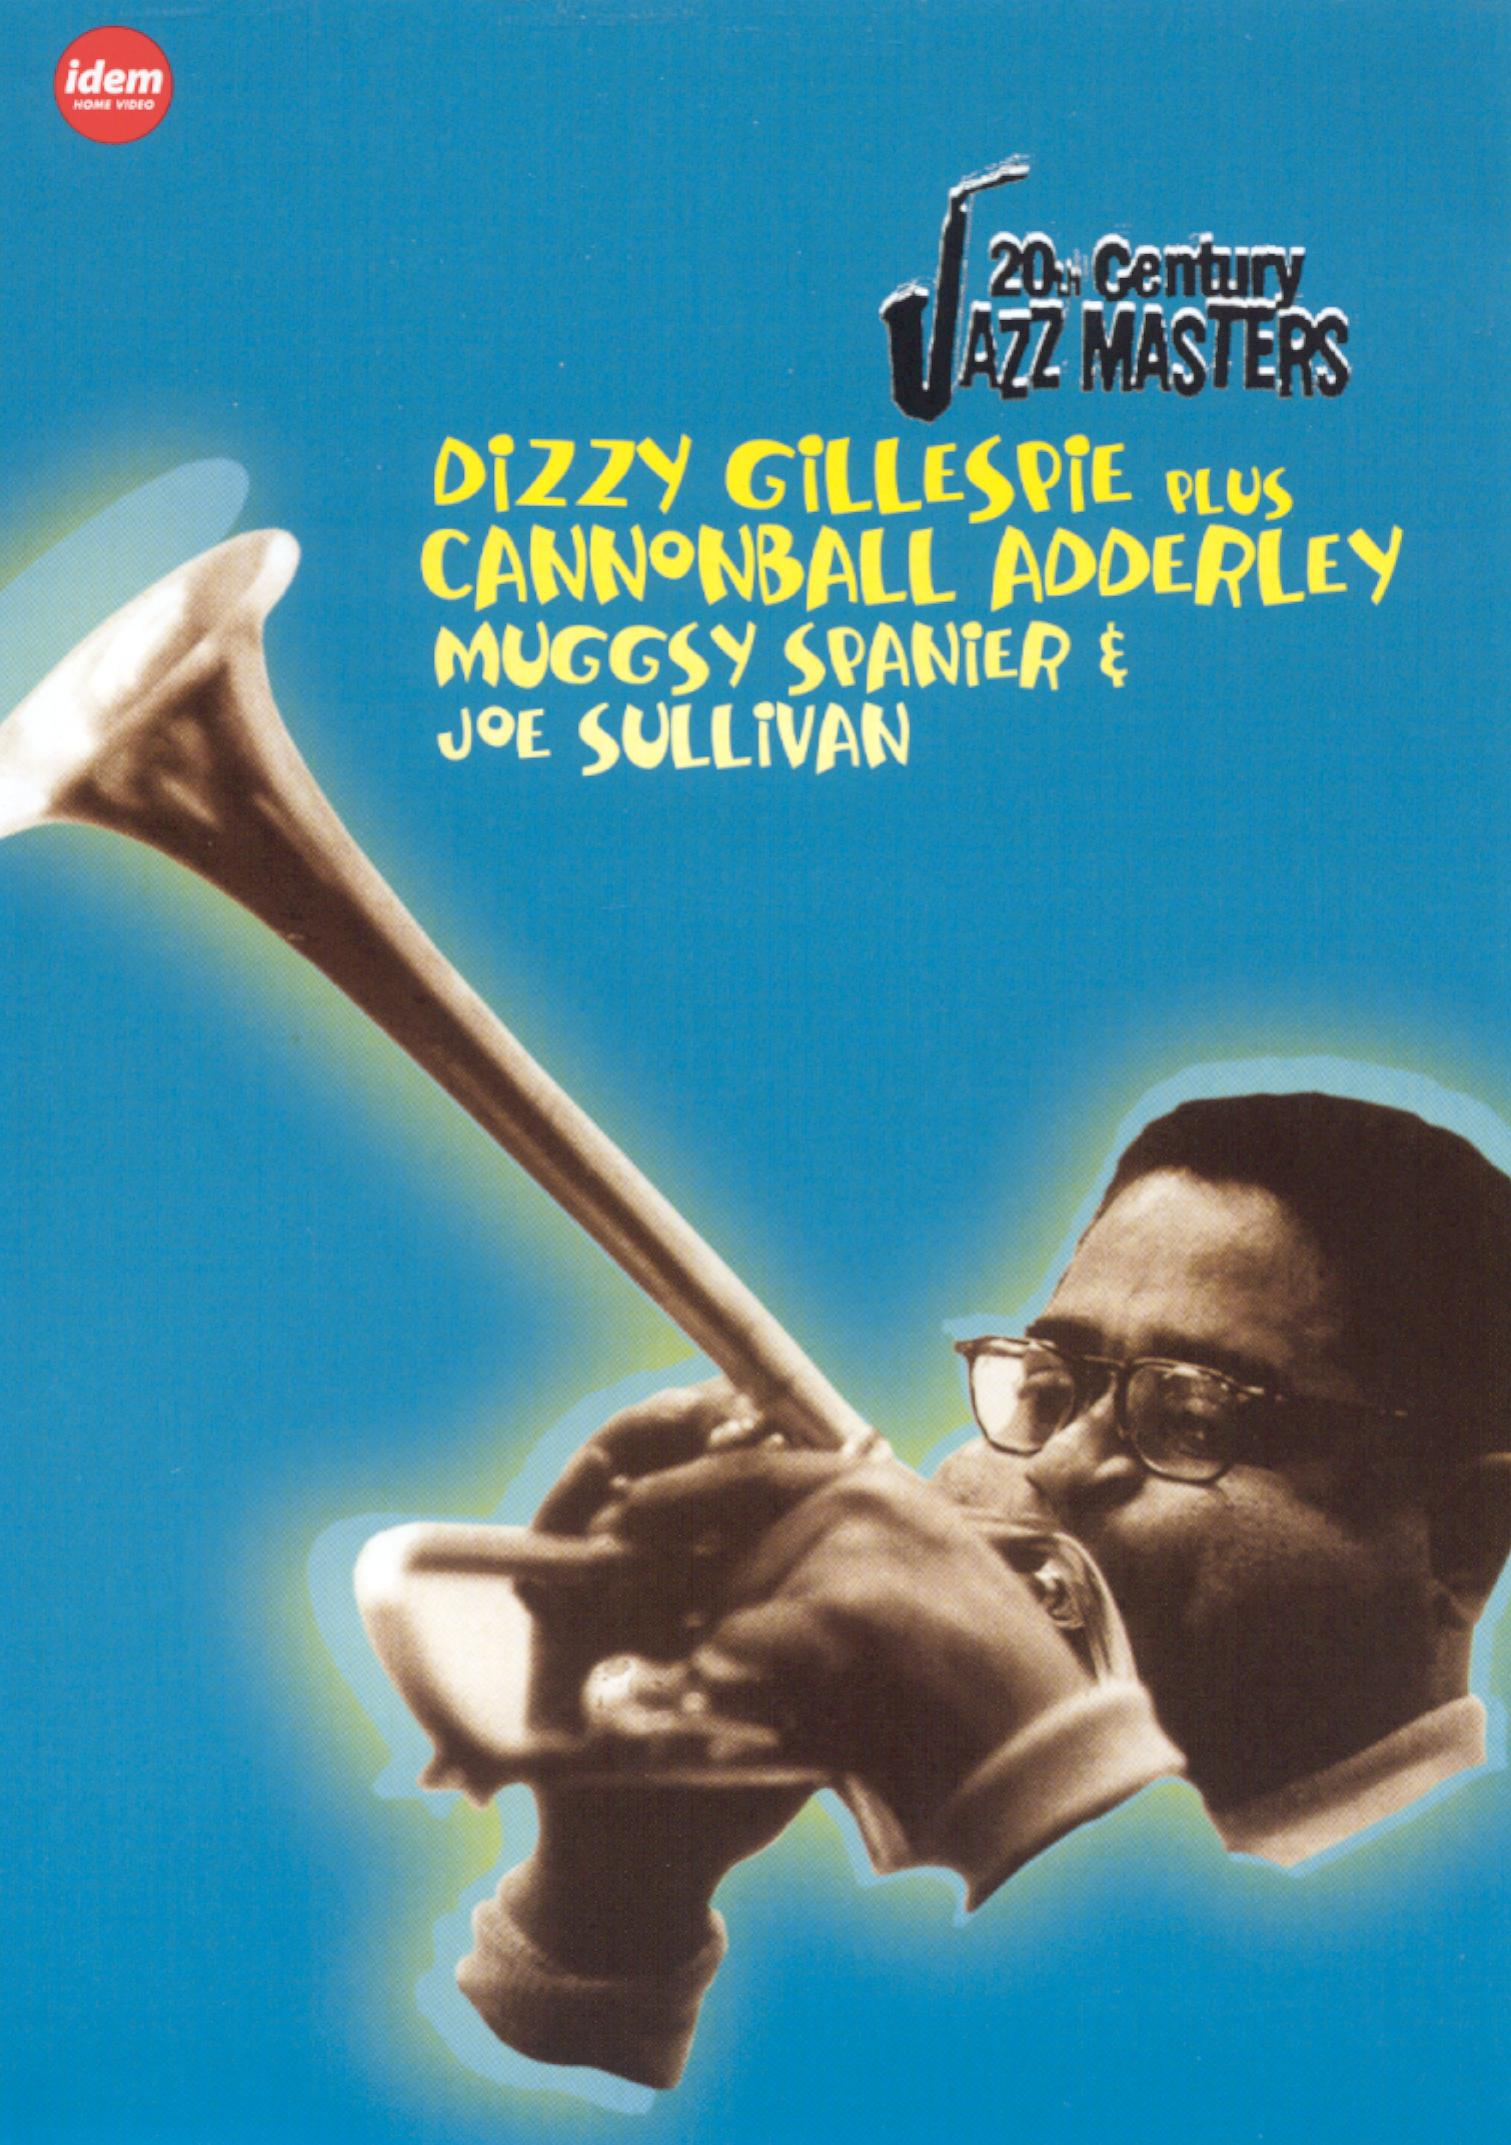 20th Century Jazz Masters: Dizzy Gillespie/Cannonball Adderley